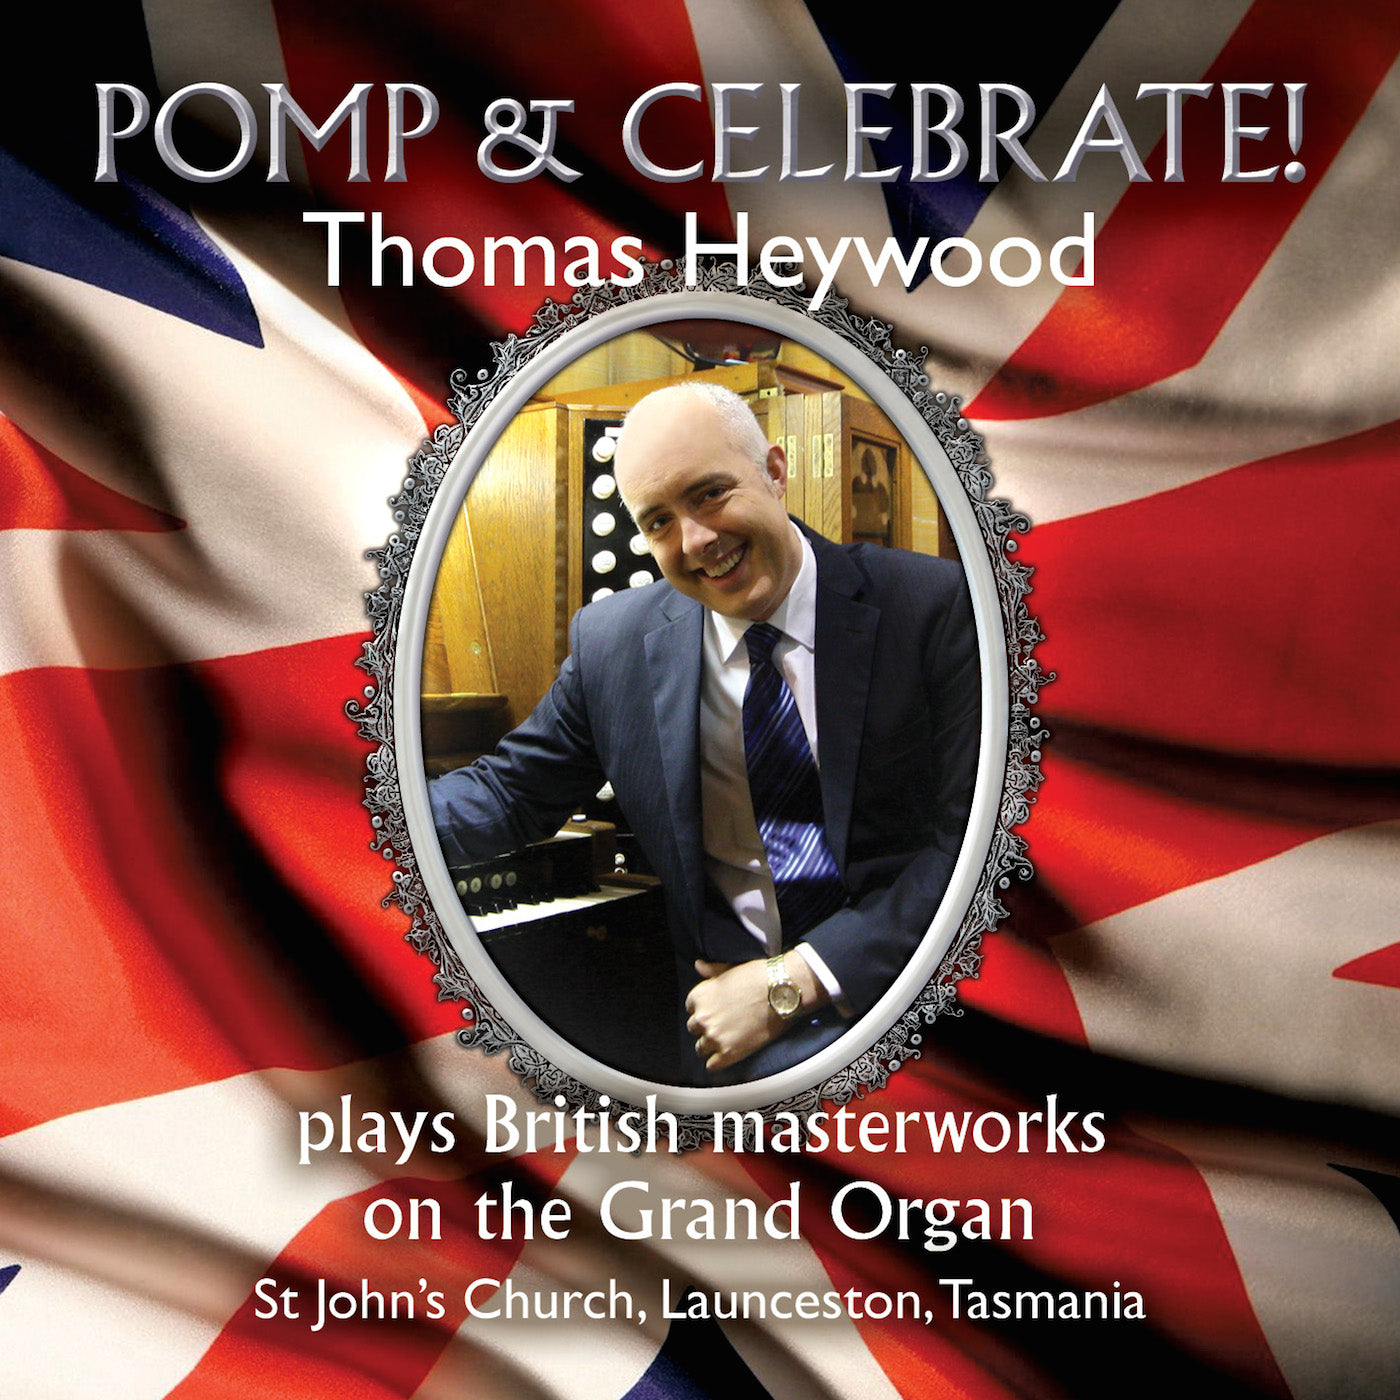 Pomp & Celebrate! (CD) - Concert Organ International